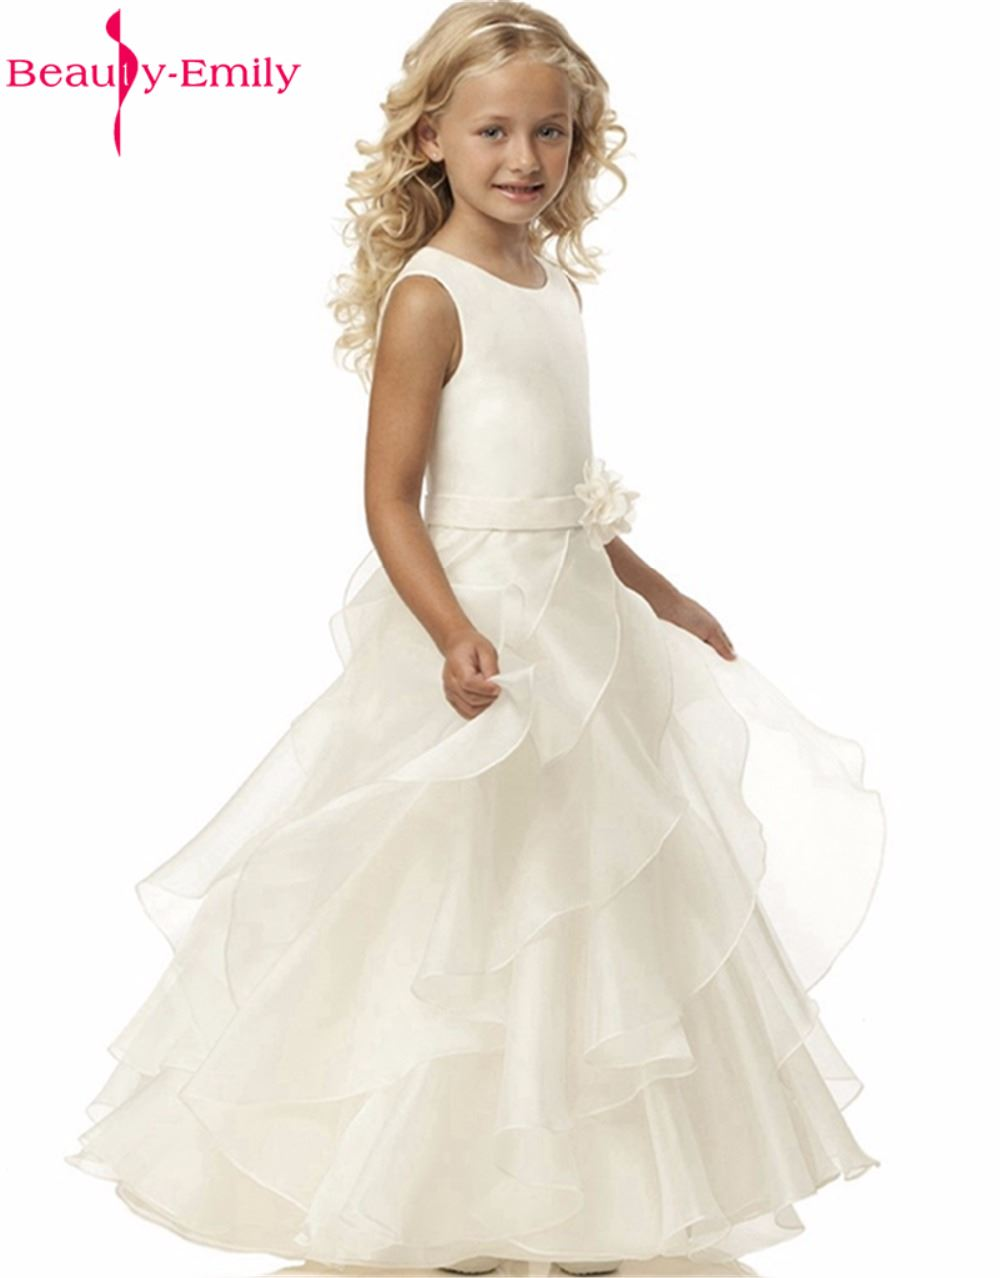 2019 Hot sale Flower Girl Dresses White Ivory Real Party Communion Dress Little Girls Kids Children